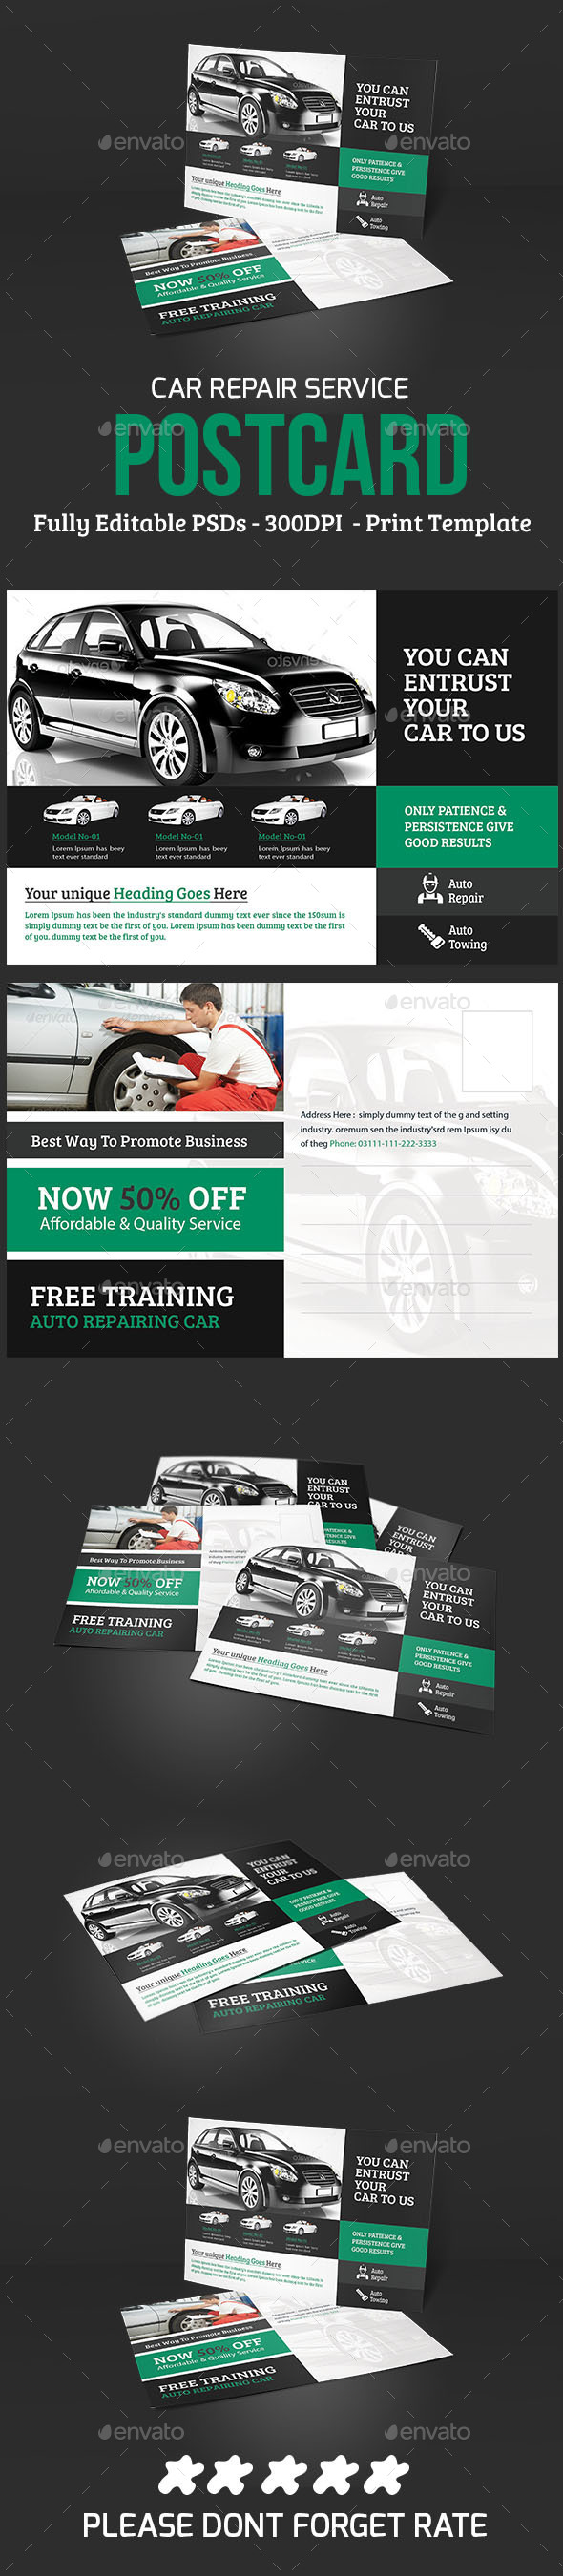 Car repair Service PostCard - Cards & Invites Print Templates